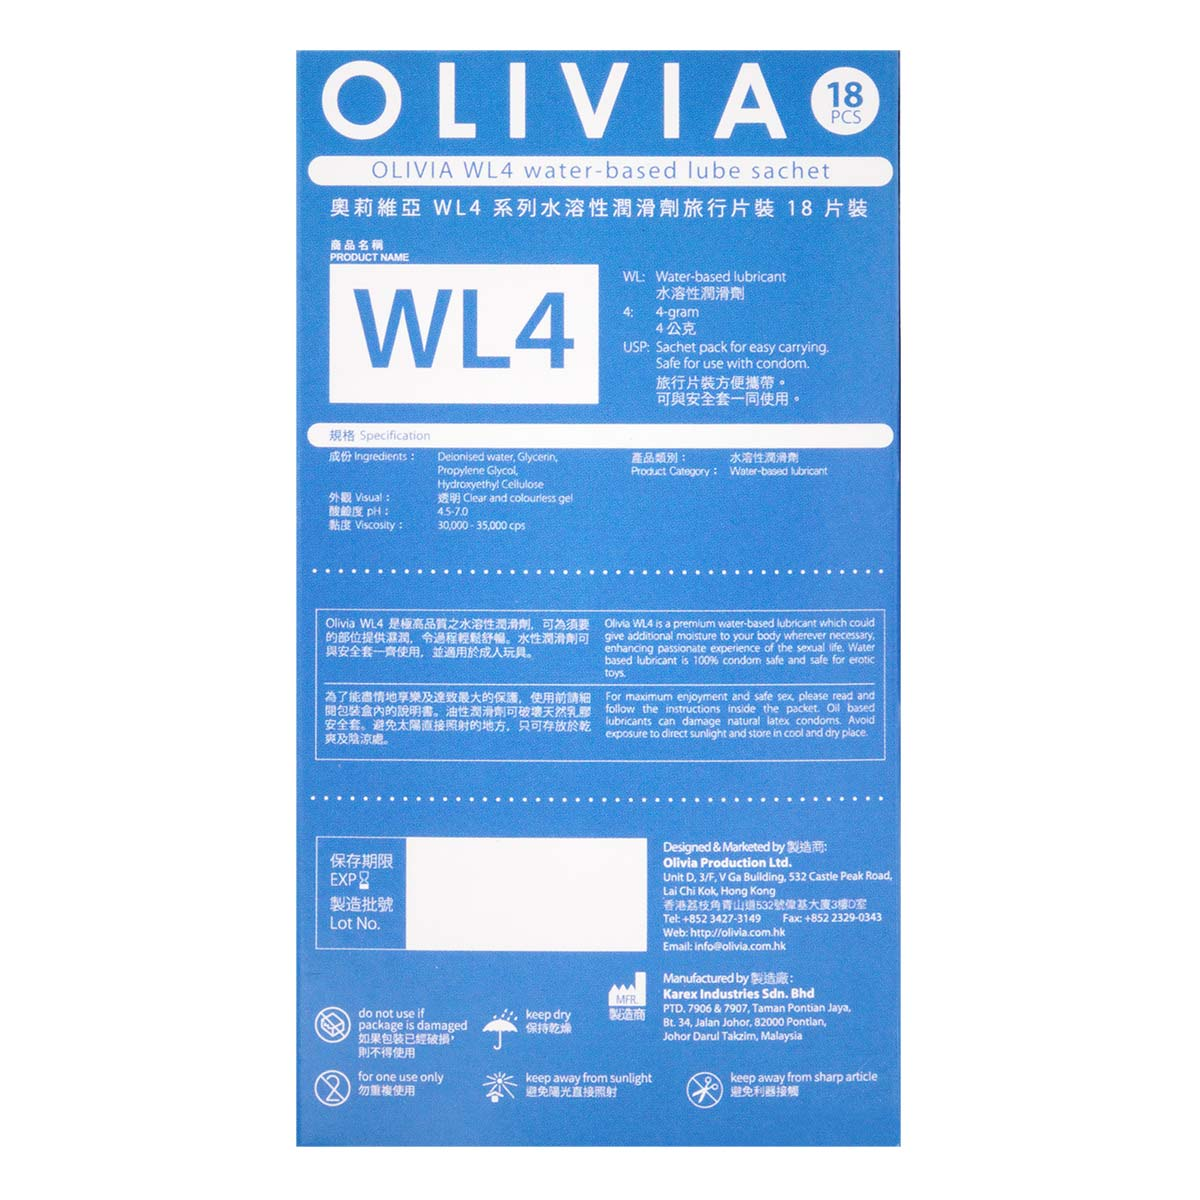 Olivia The East Pure 4g (sachet) 18 pieces Water-based Lubricant